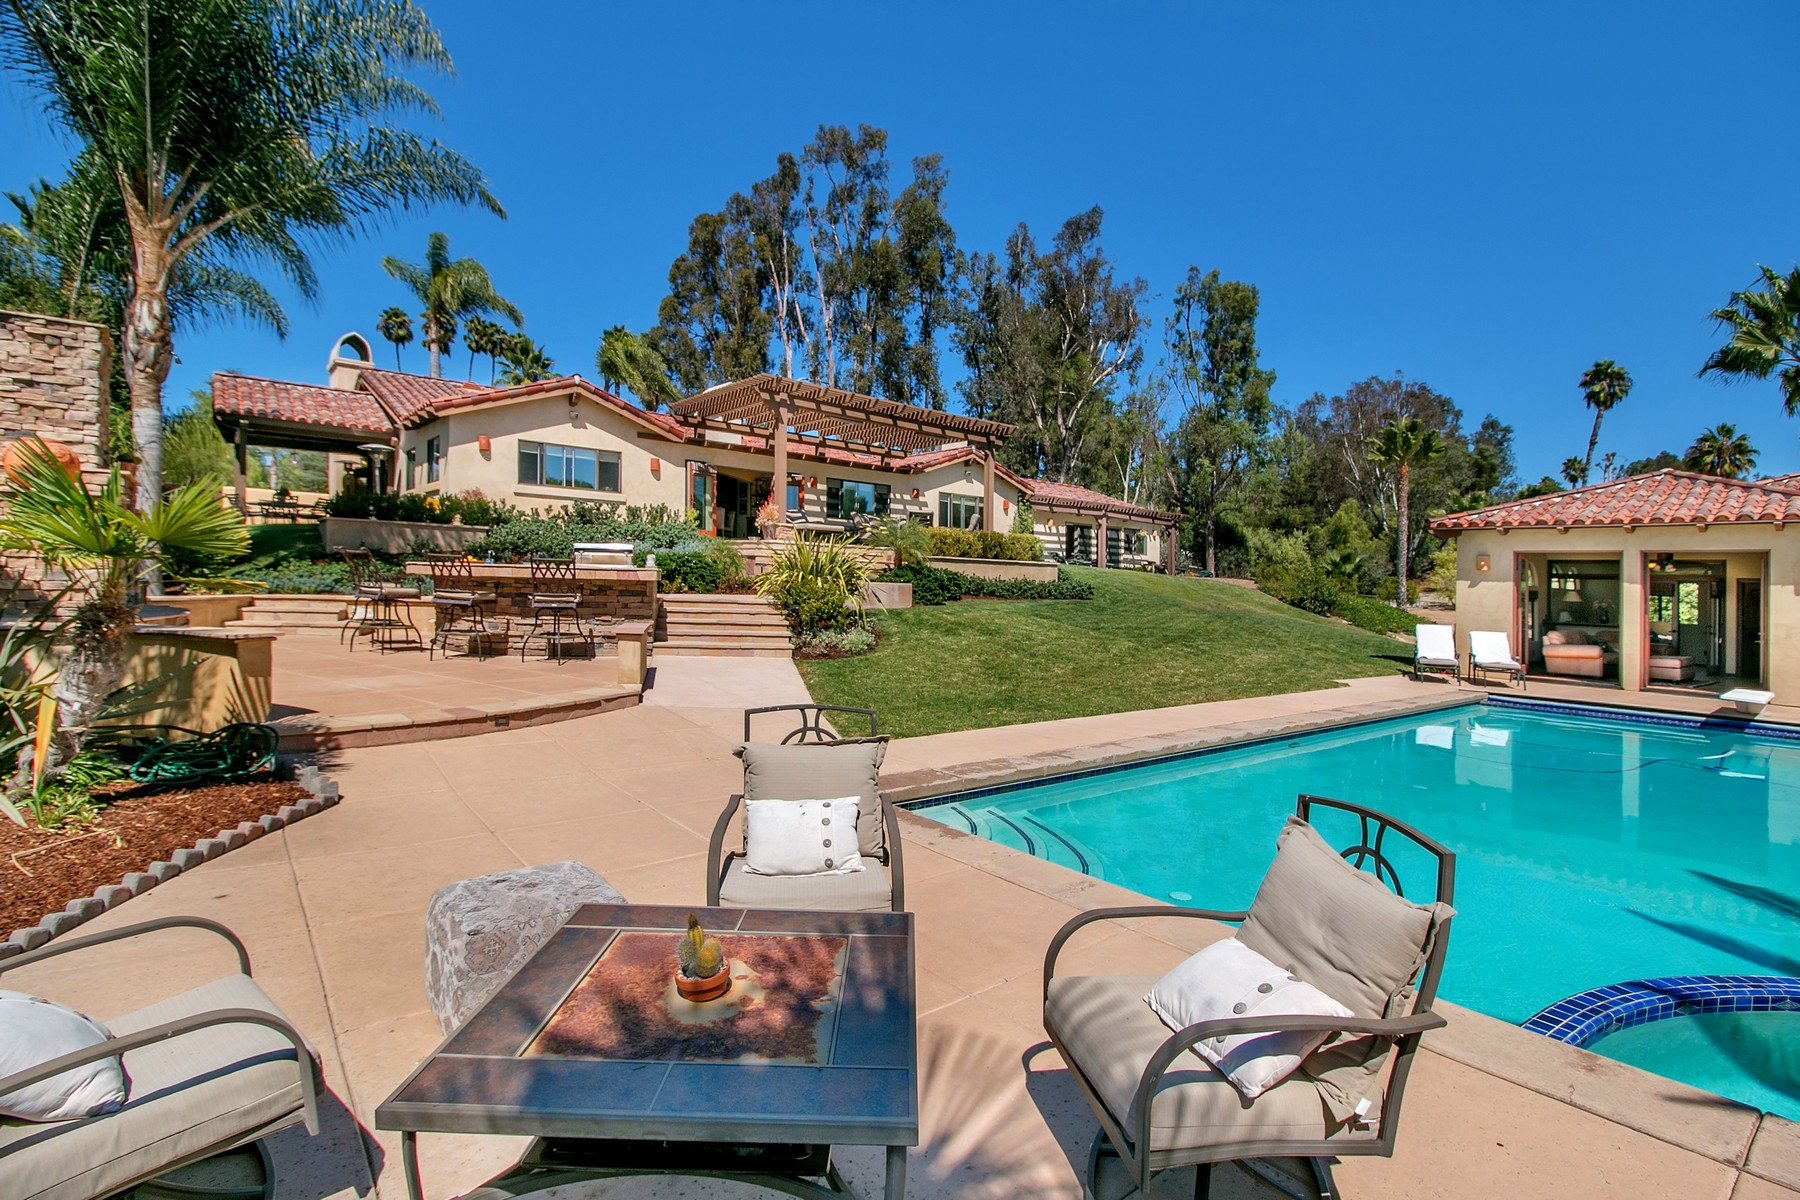 Single Family Home for Sale at 7211 Siete Leguas Rancho Santa Fe, California 92067 United States